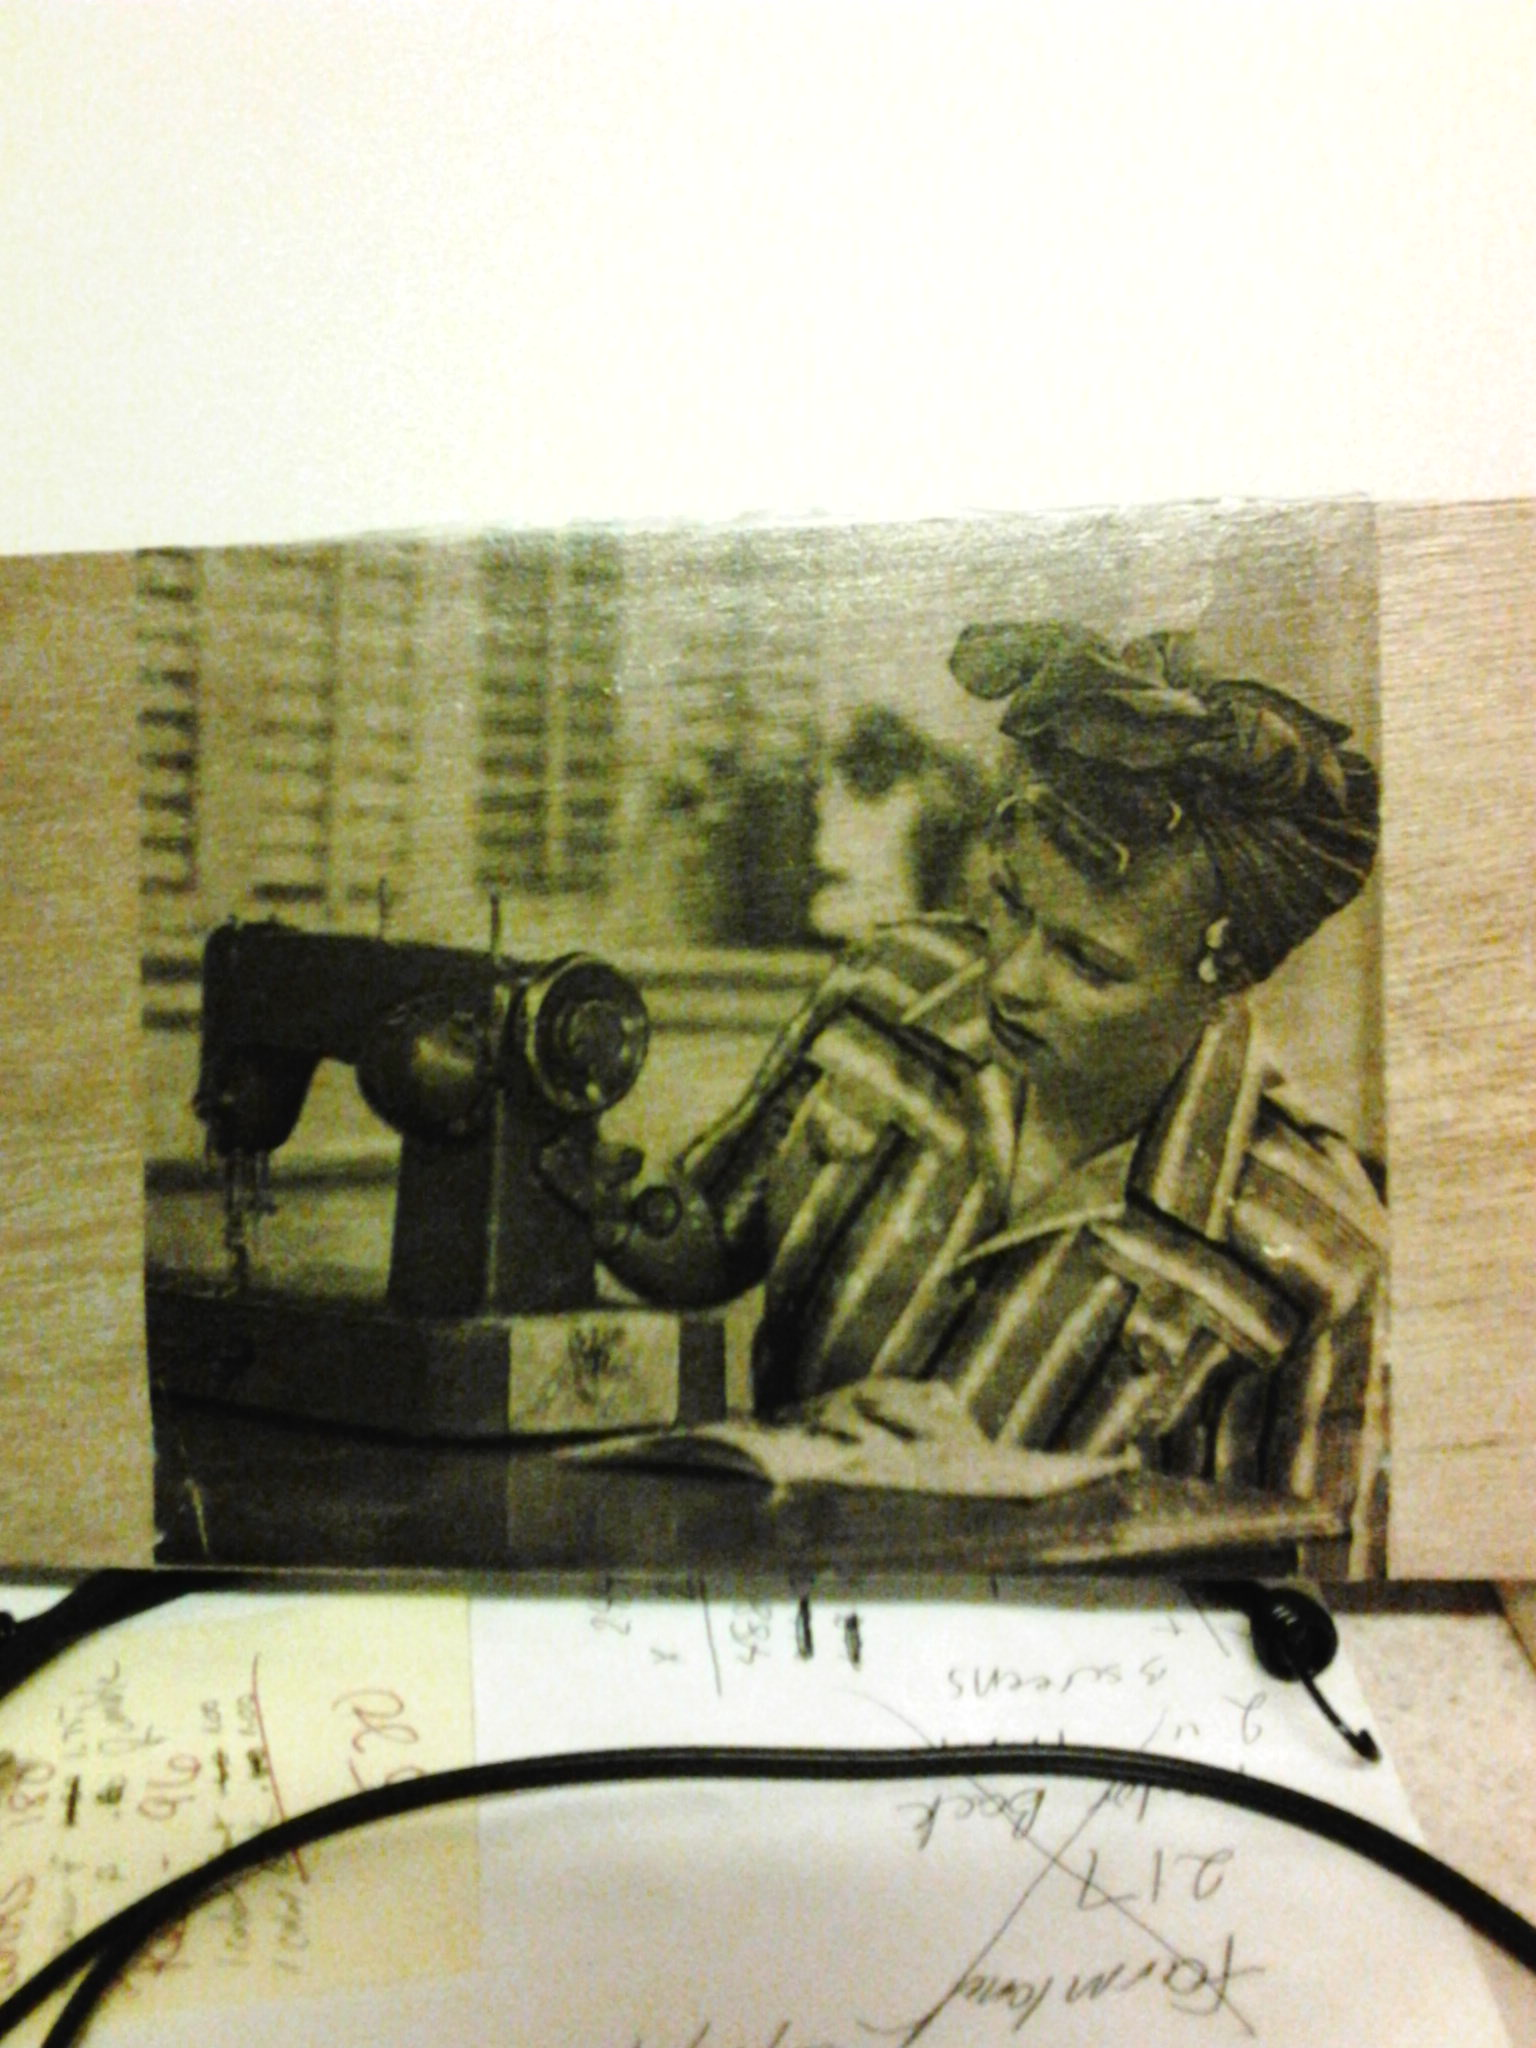 transfer a image of choice to a 5x7 piece of wood.